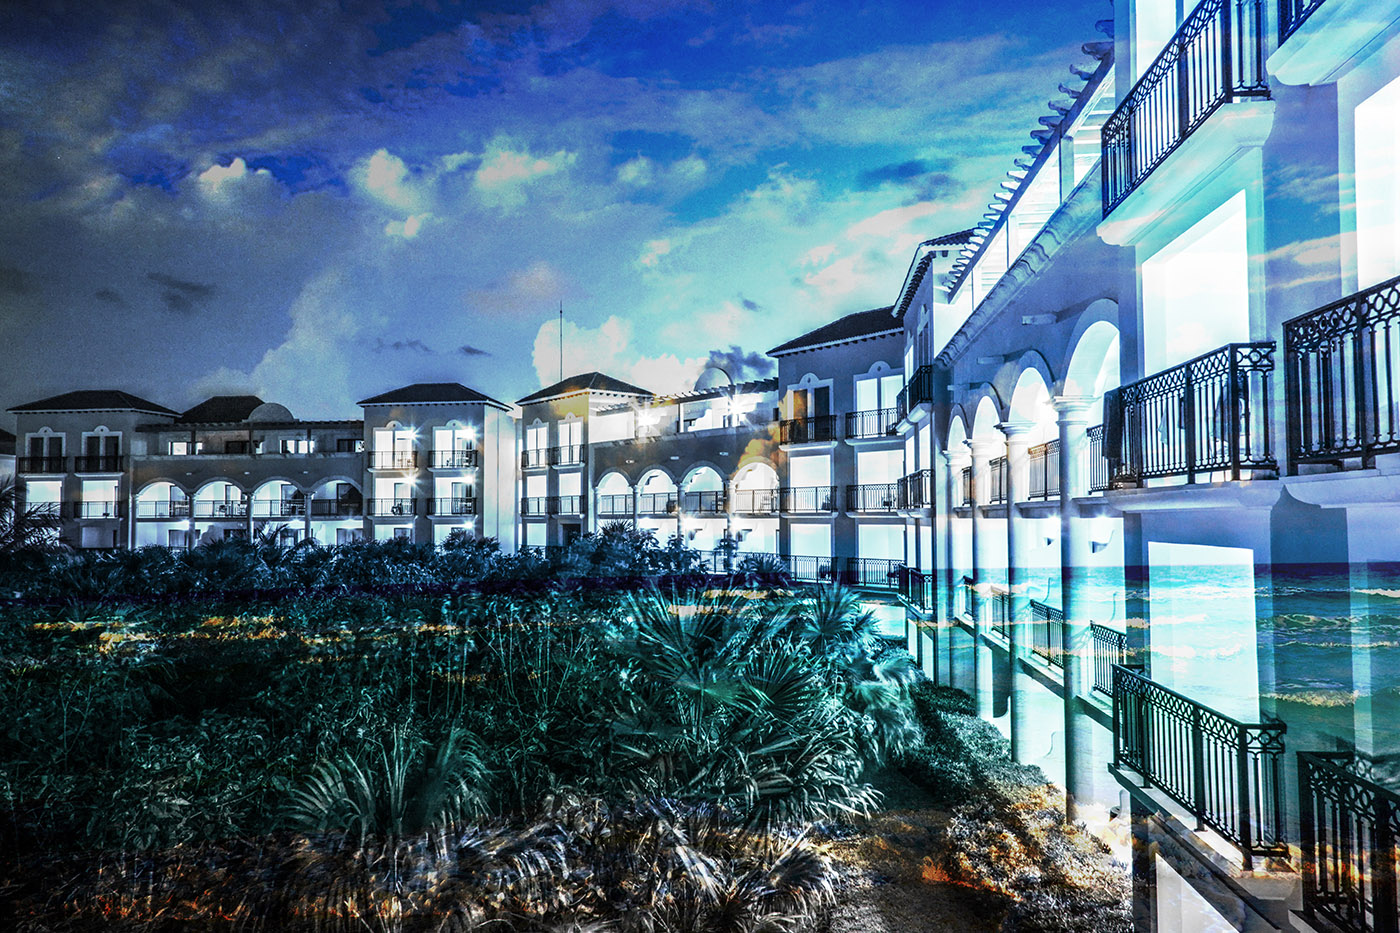 Hotel Resort Photo Montage 03 - Dimensions: 5616 by 3744 pixels